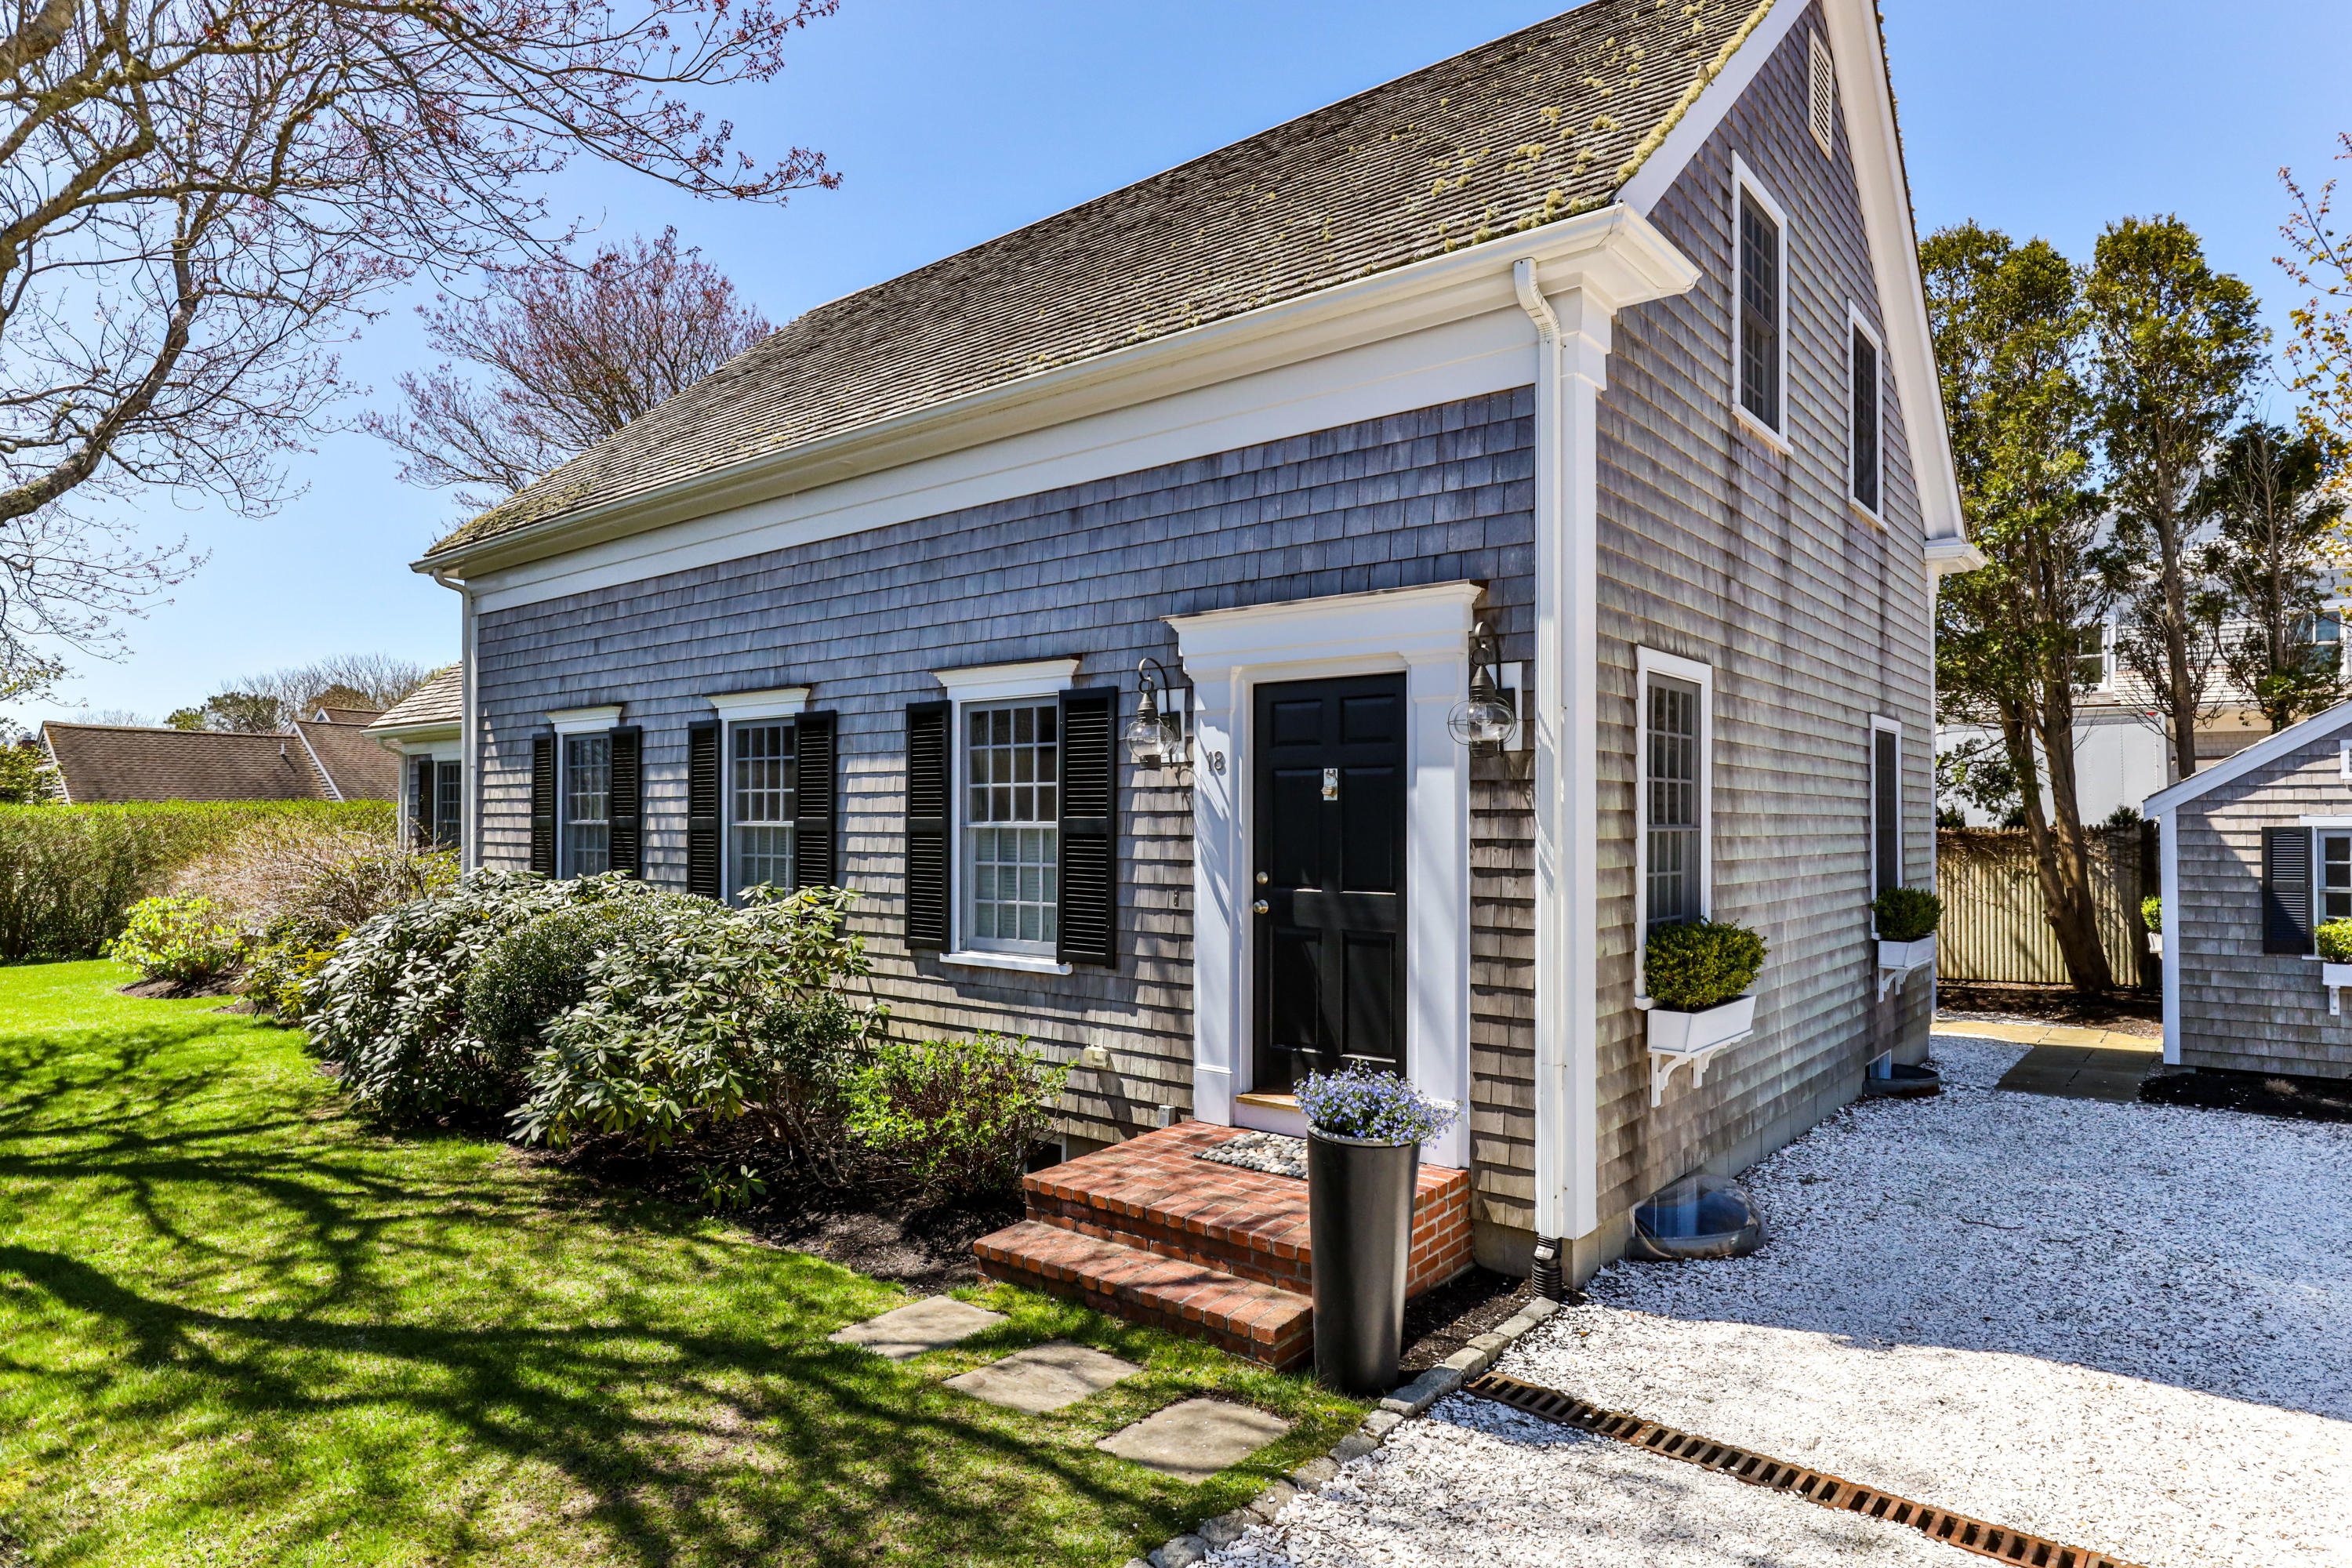 18 Seaview Terrace, Chatham, MA details